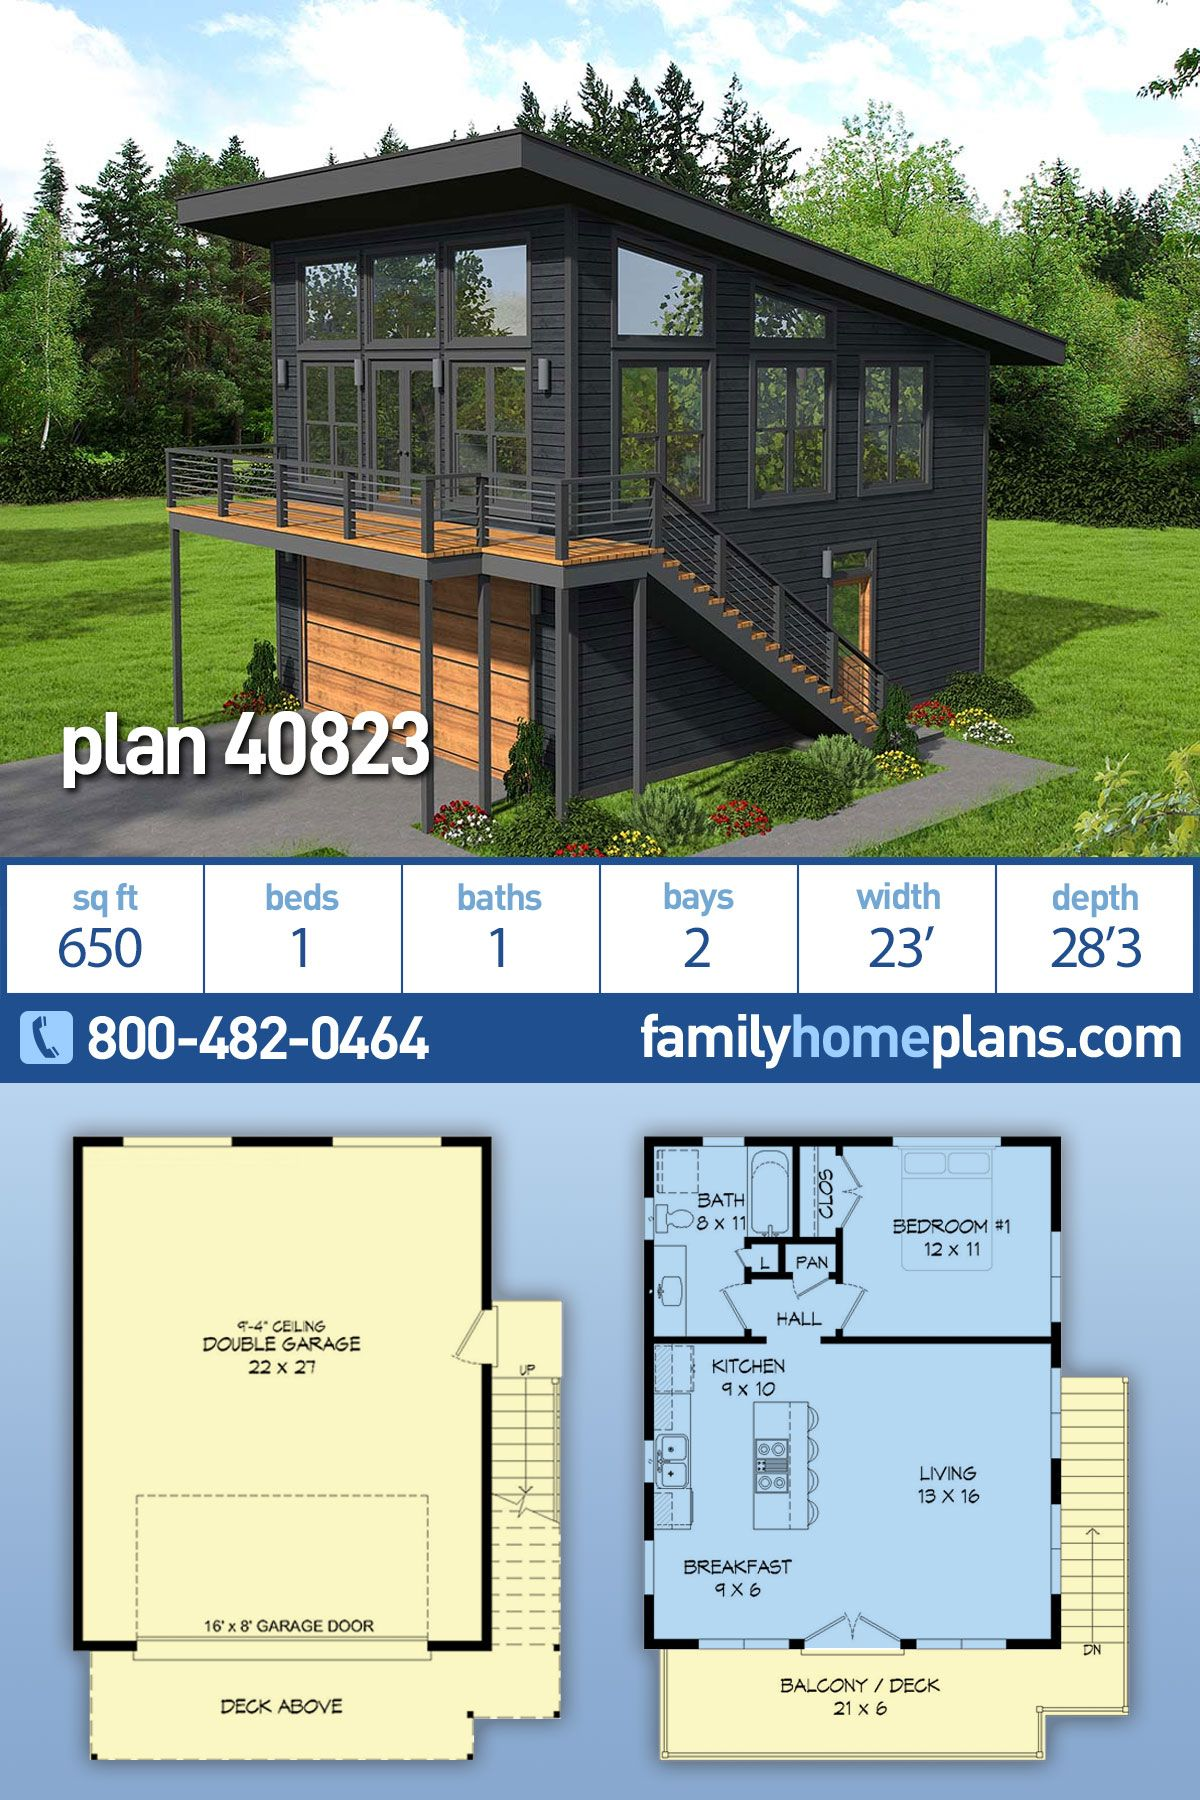 Modern Style 2 Car Garage Apartment Plan Number 40823 With 1 Bed 1 Bath In 2020 Carriage House Plans Garage Apartment Plan One Bedroom House